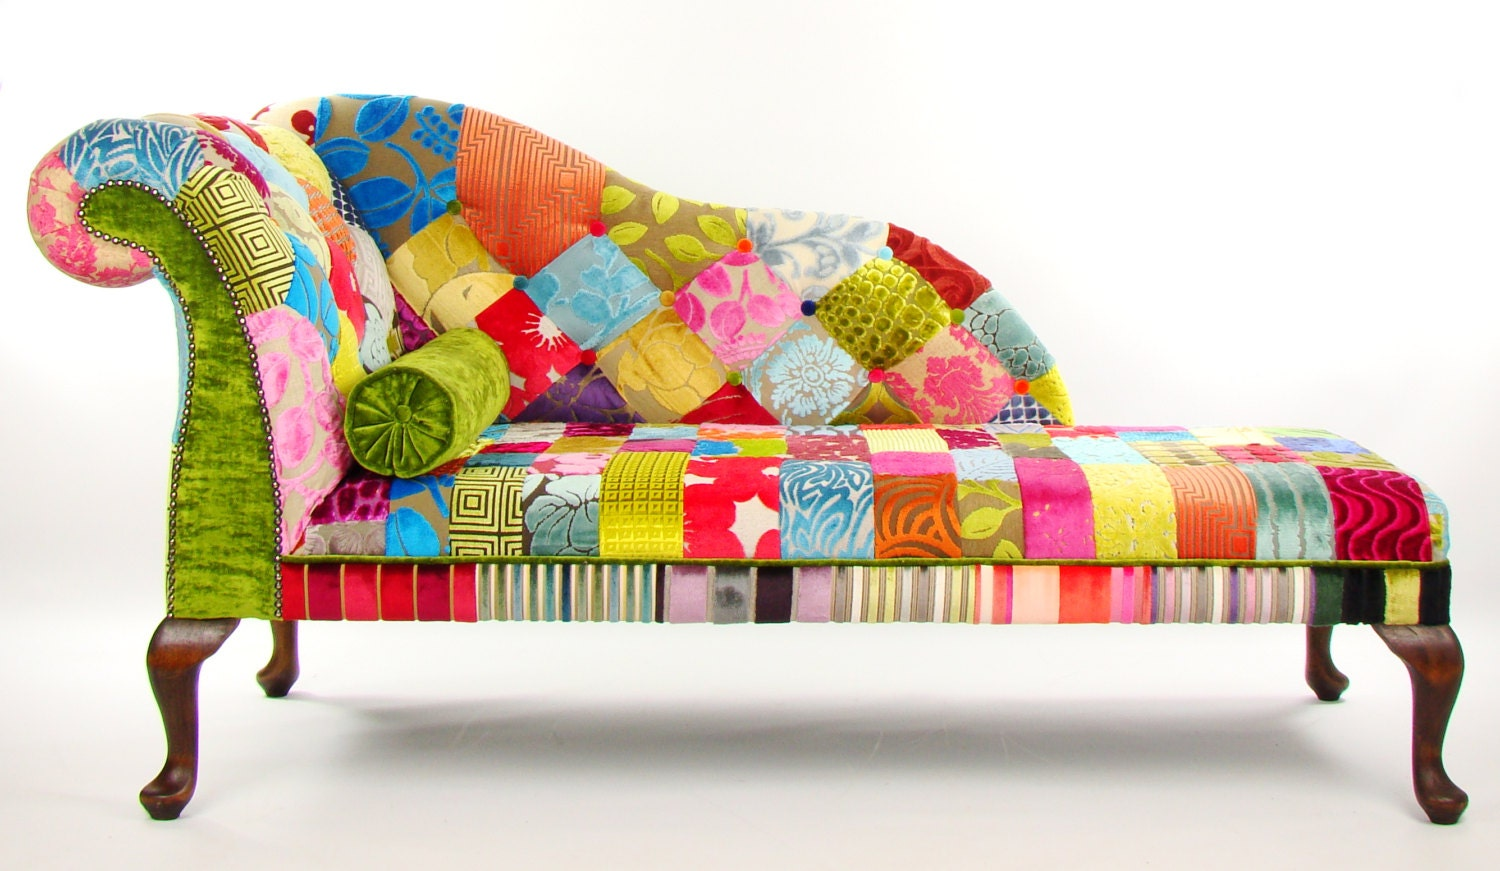 Bespoke patchwork lhf chaise longue designers guild fabric - Chaise anders patchwork ...